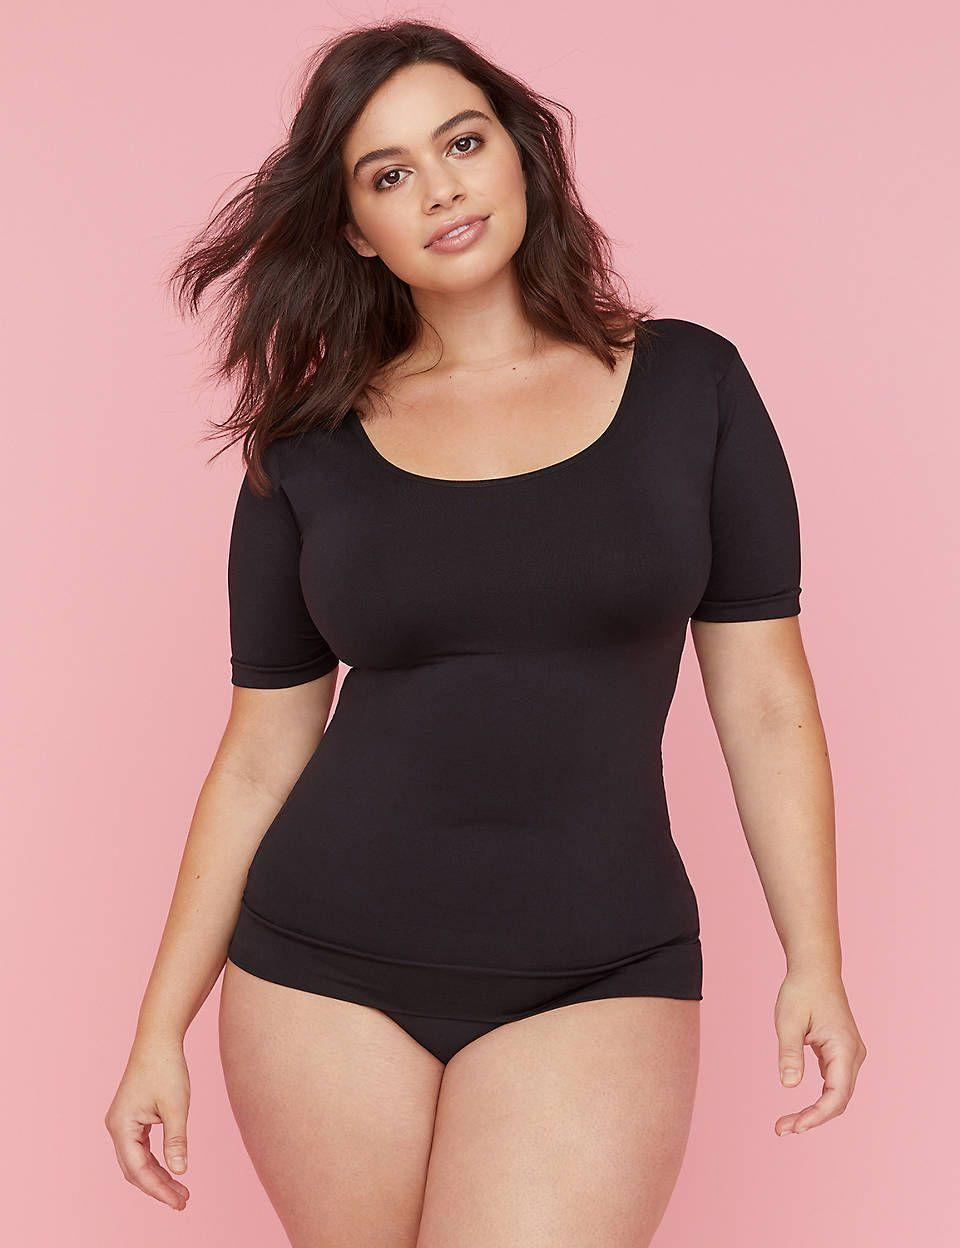 "<p><strong>Lane Bryant</strong></p><p>lanebryant.com</p><p><strong>$32.50</strong></p><p><a href=""https://go.redirectingat.com?id=74968X1596630&url=https%3A%2F%2Fcacique.lanebryant.com%2Flevel-2-shaping-top%2Fprd-350990&sref=https%3A%2F%2Fwww.cosmopolitan.com%2Fstyle-beauty%2Ffashion%2Fg32873687%2Fbest-shapewear-for-women%2F"" rel=""nofollow noopener"" target=""_blank"" data-ylk=""slk:Shop Now"" class=""link rapid-noclick-resp"">Shop Now</a></p><p>The top here looks like your average scoop-neck shirt. However, that firm spandex material provides some smoothing support for the upper arms and the midsection. </p>"